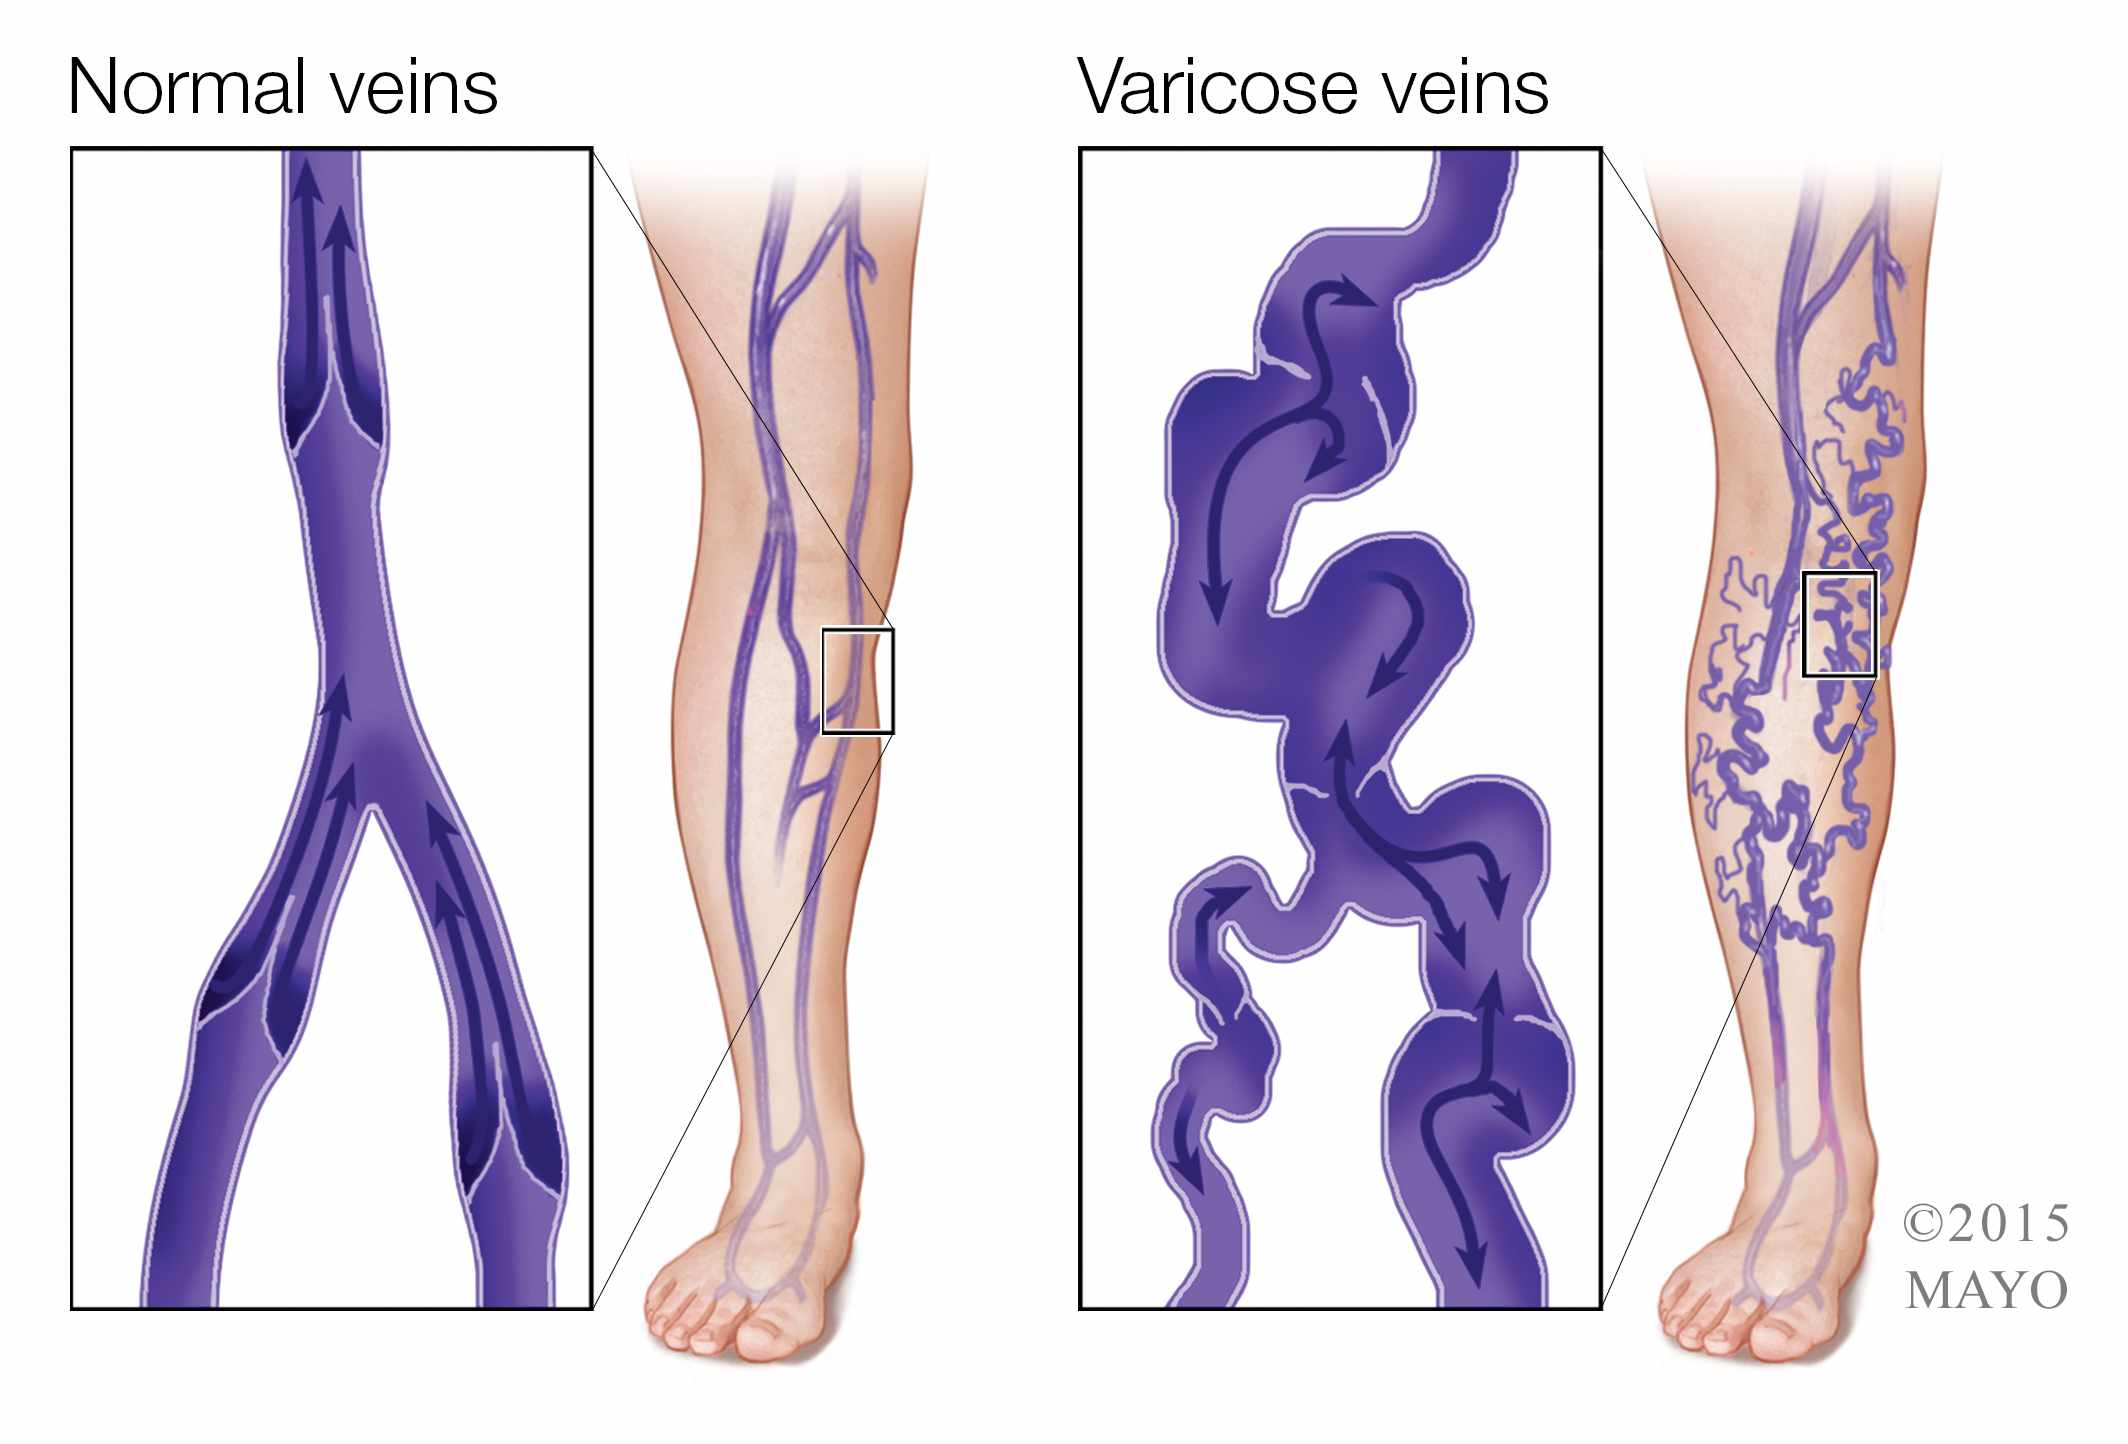 Medical illustration of varicose veins and normal veins in legs